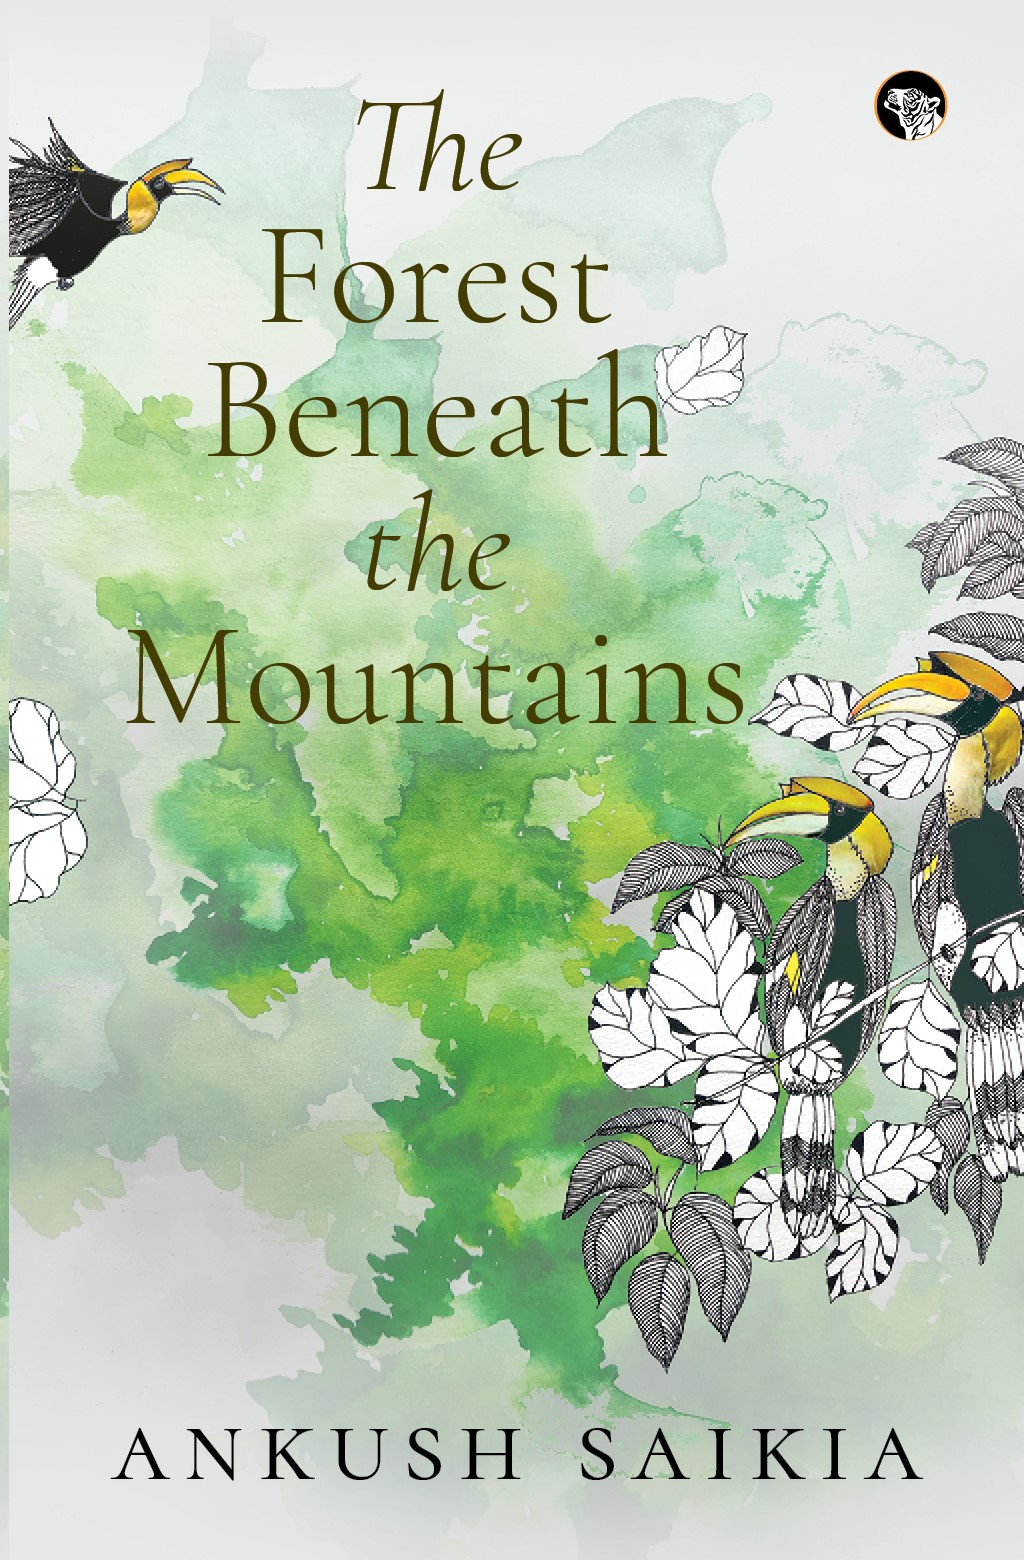 Book Excerpt: The Forest Beneath the Mountains by Ankush Saikia